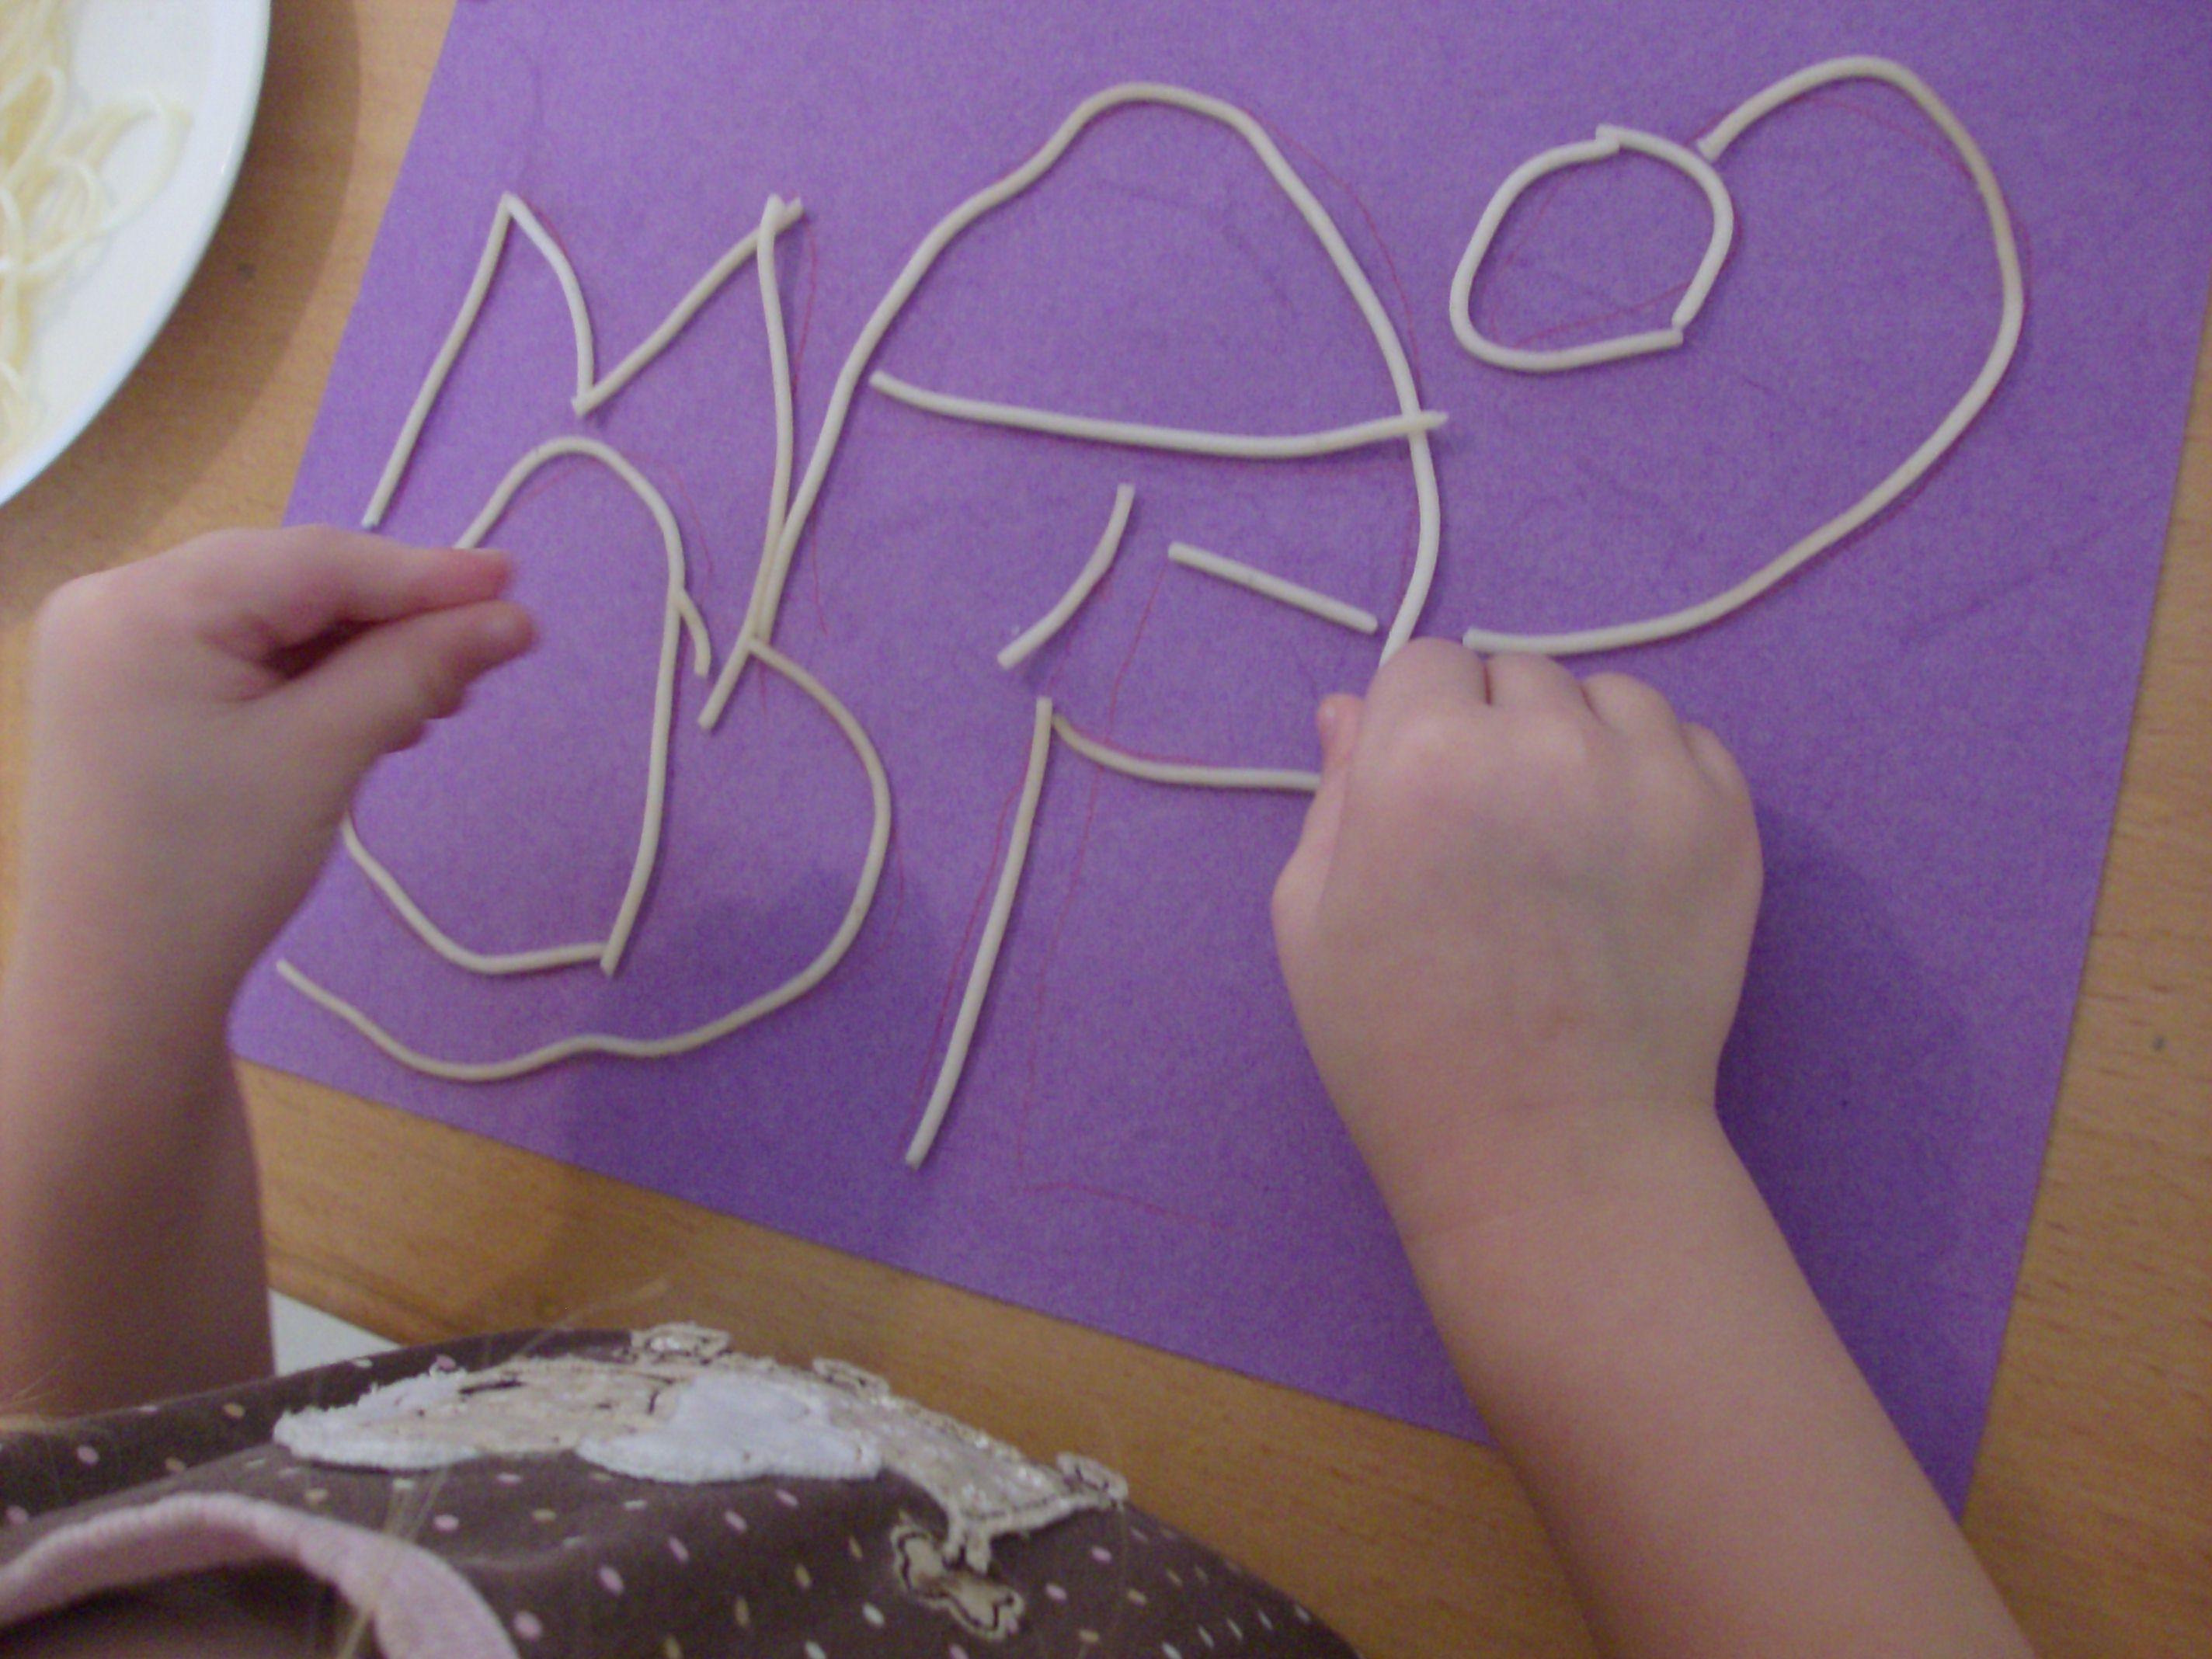 Spaghetti Activities for Kids - Name Writing